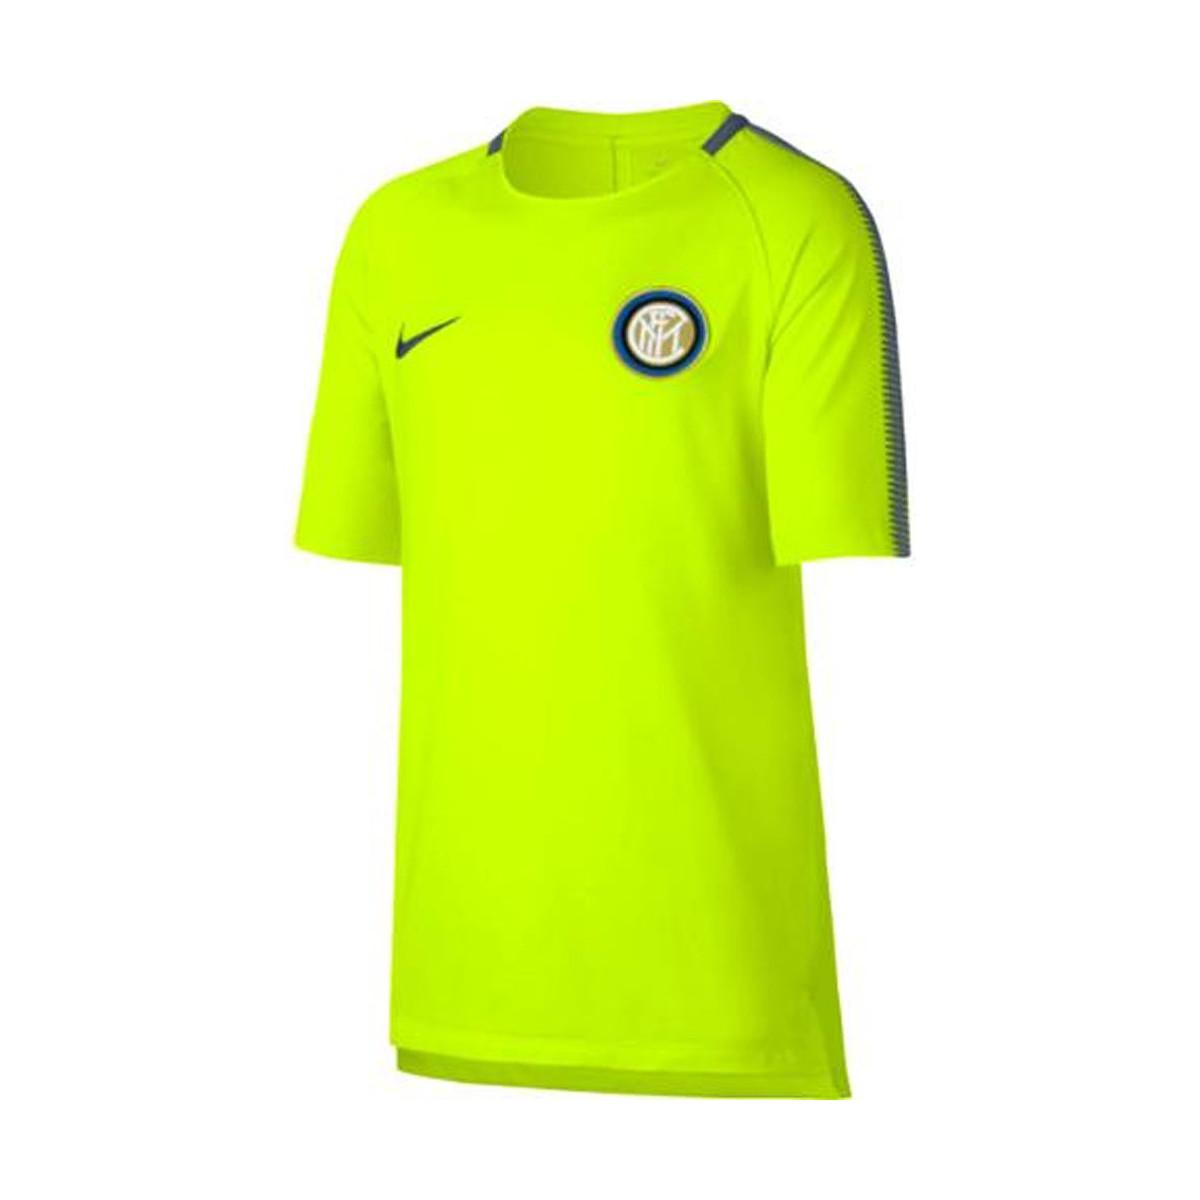 huge selection of aeb1a d8ee3 2017-2018 Inter Milan Training Shirt (volt) - Kids Men's T Shirt In Yellow